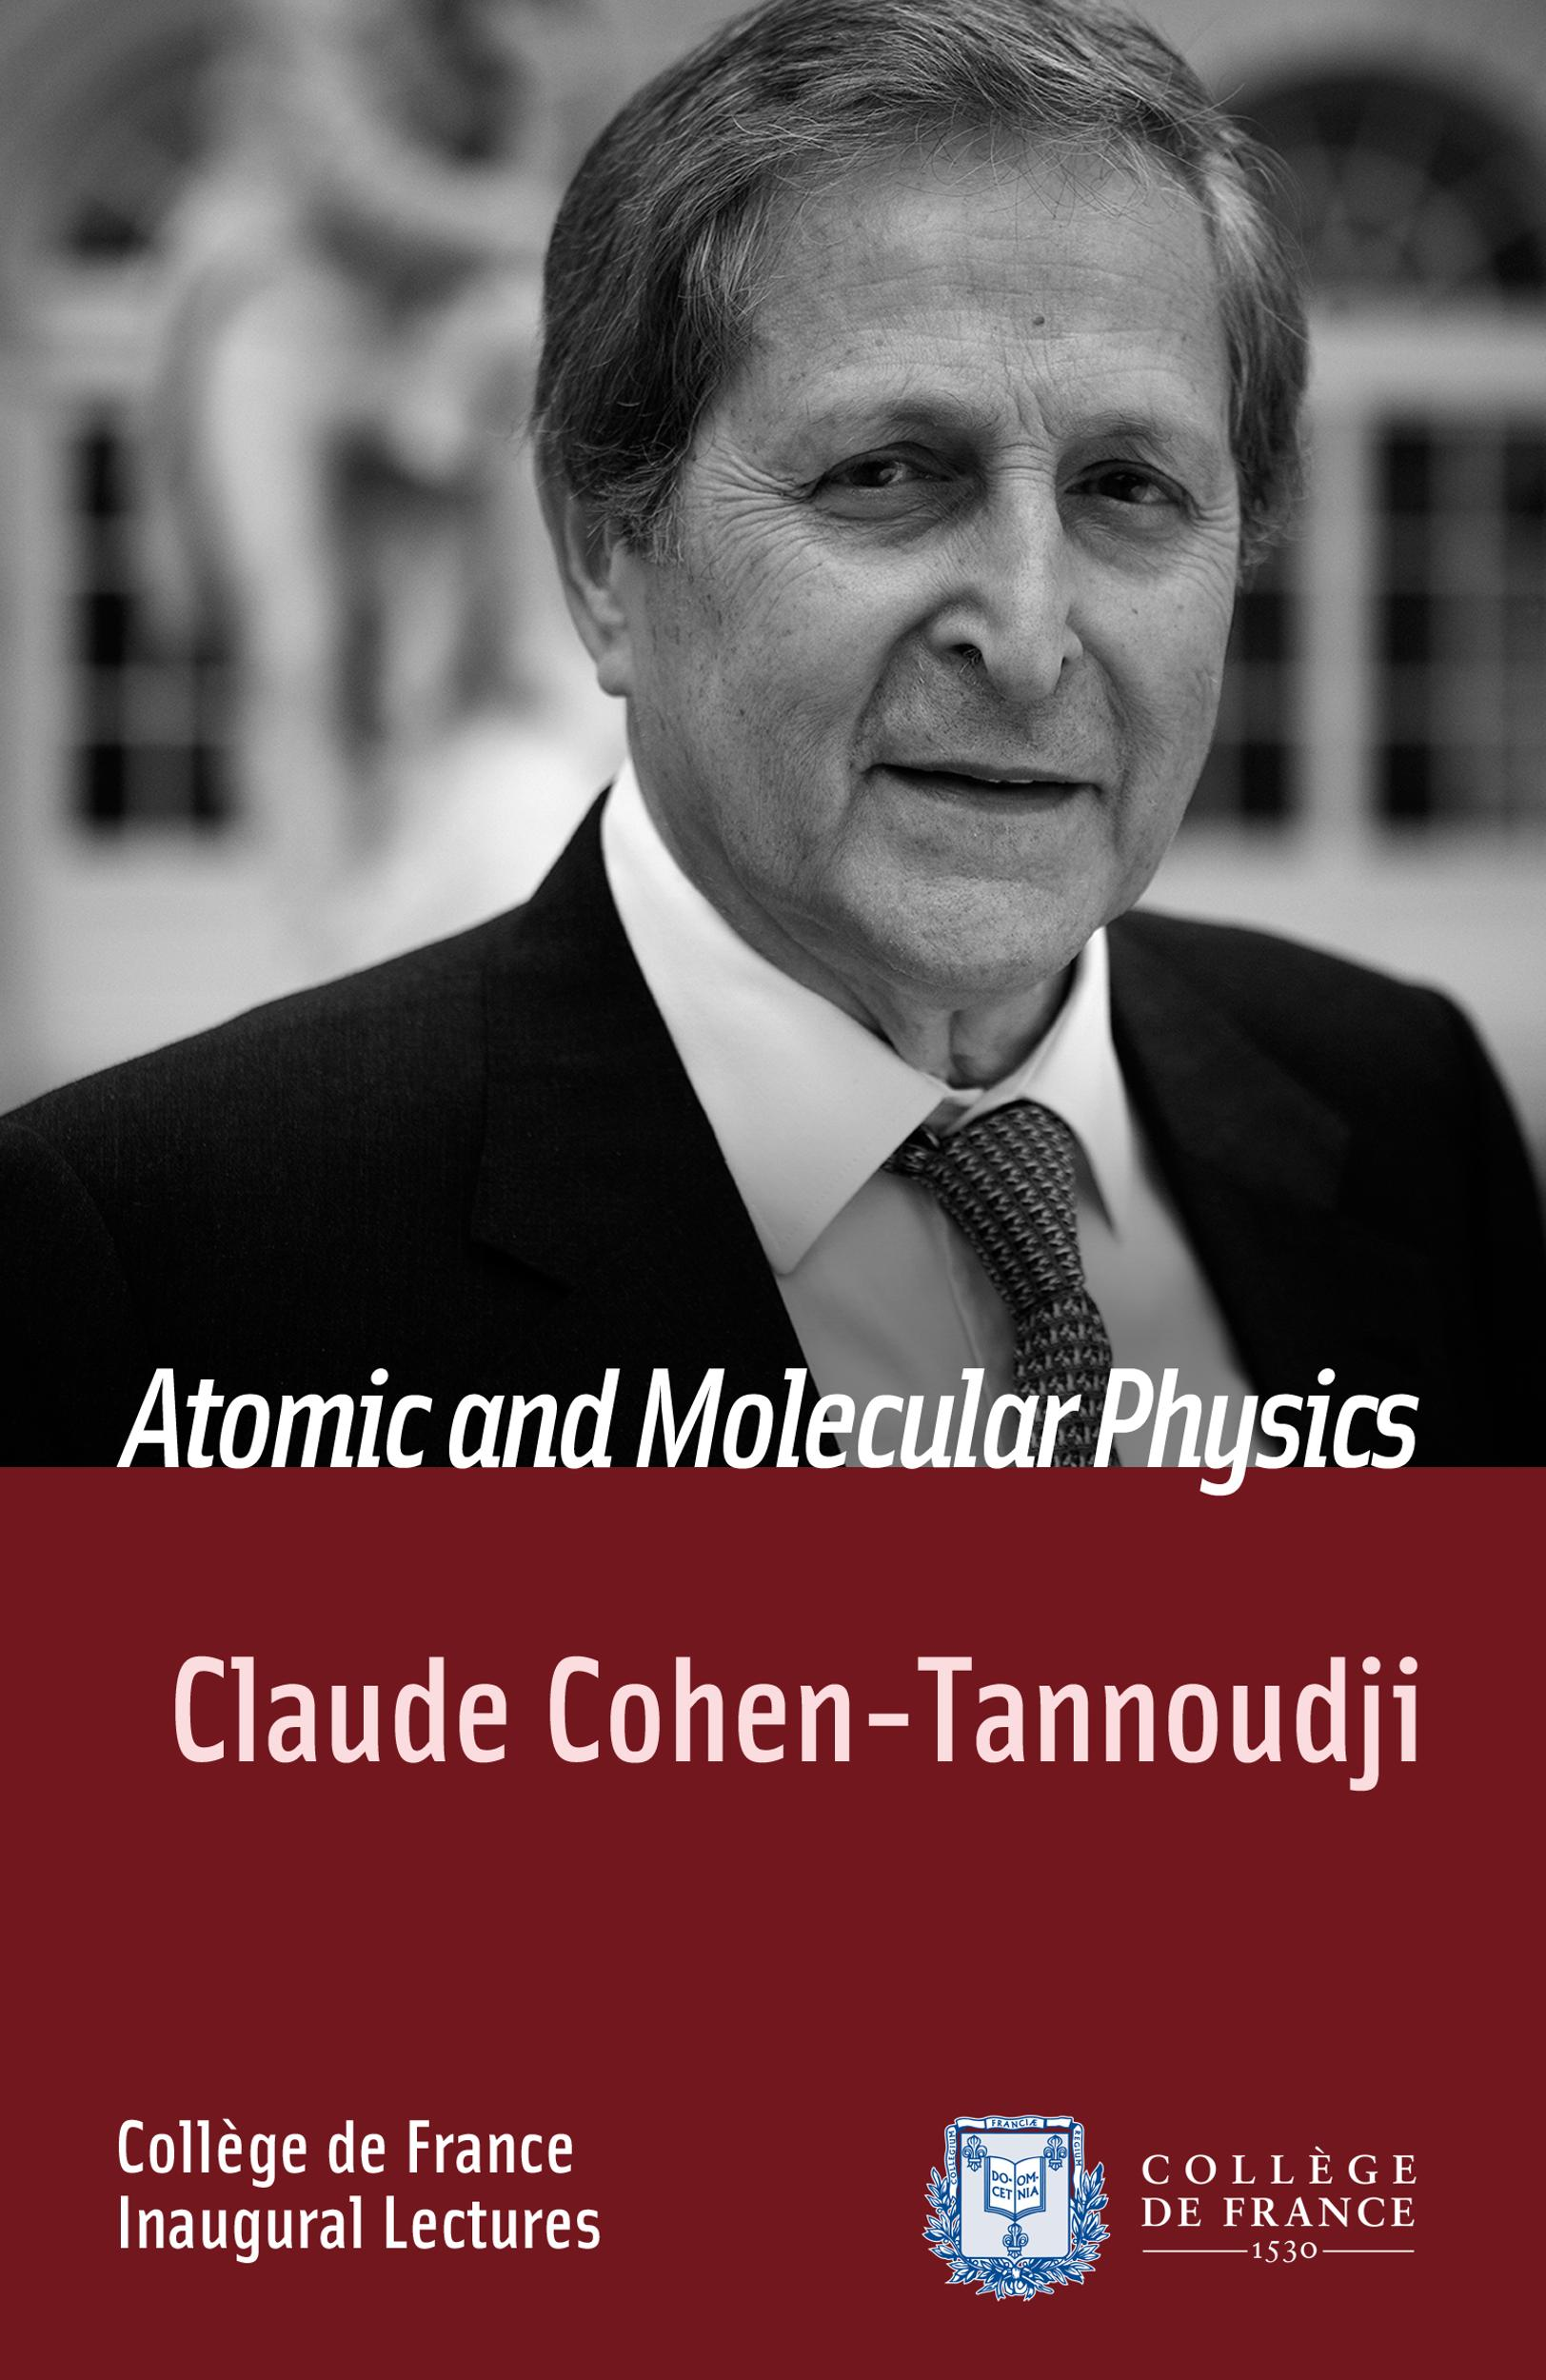 Atomic and Molecular Physics, INAUGURAL LECTURE DELIVERED ON TUESDAY 11 DECEMBER 1973